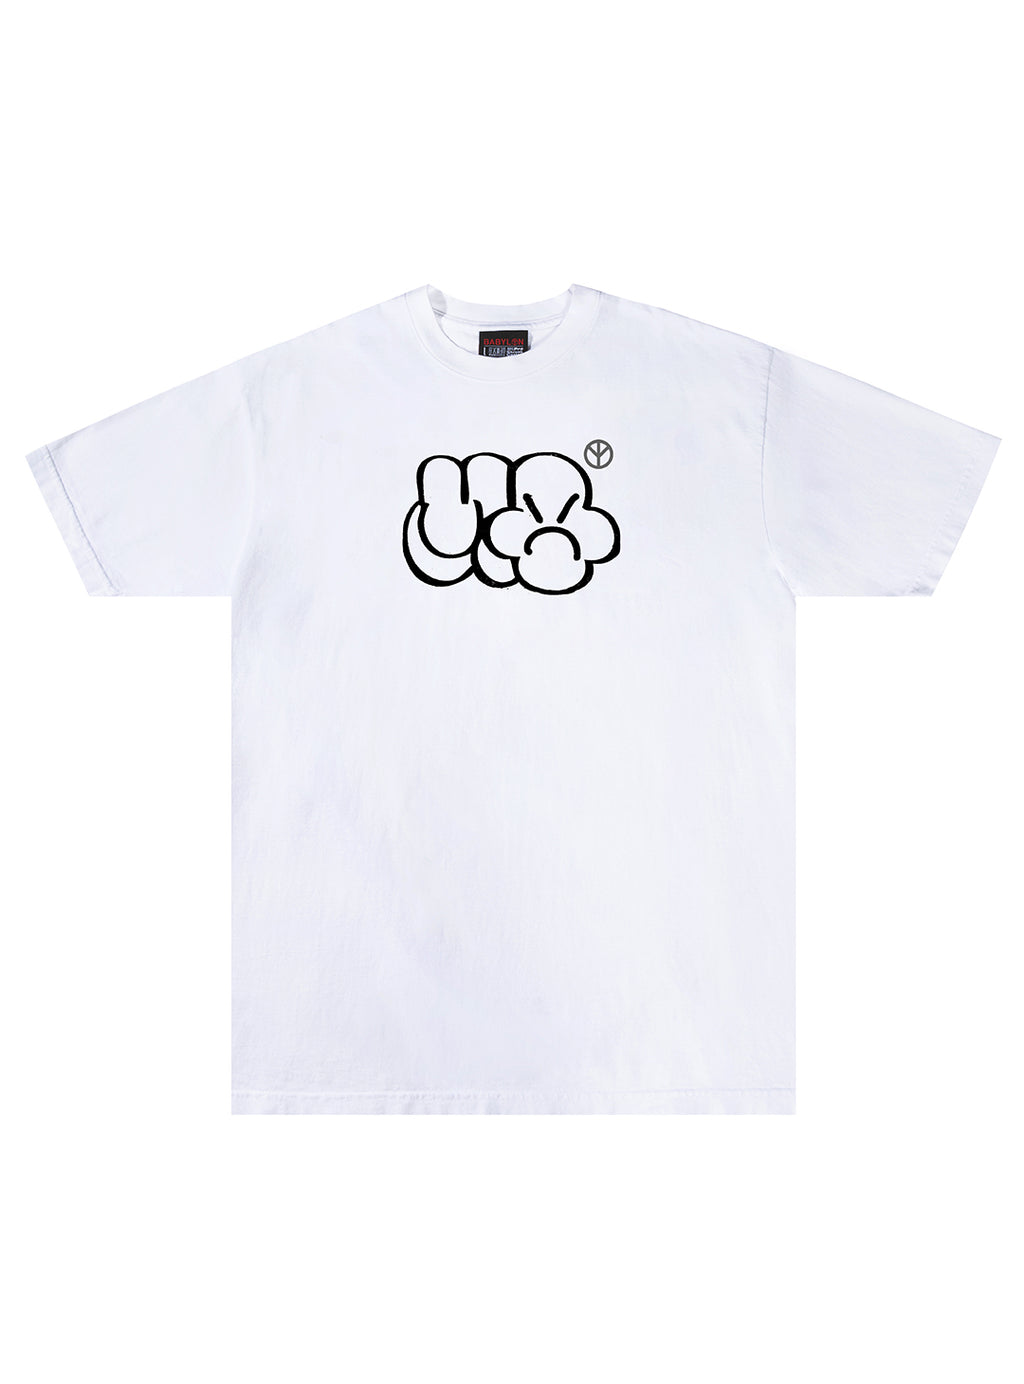 MQ THROW TEE